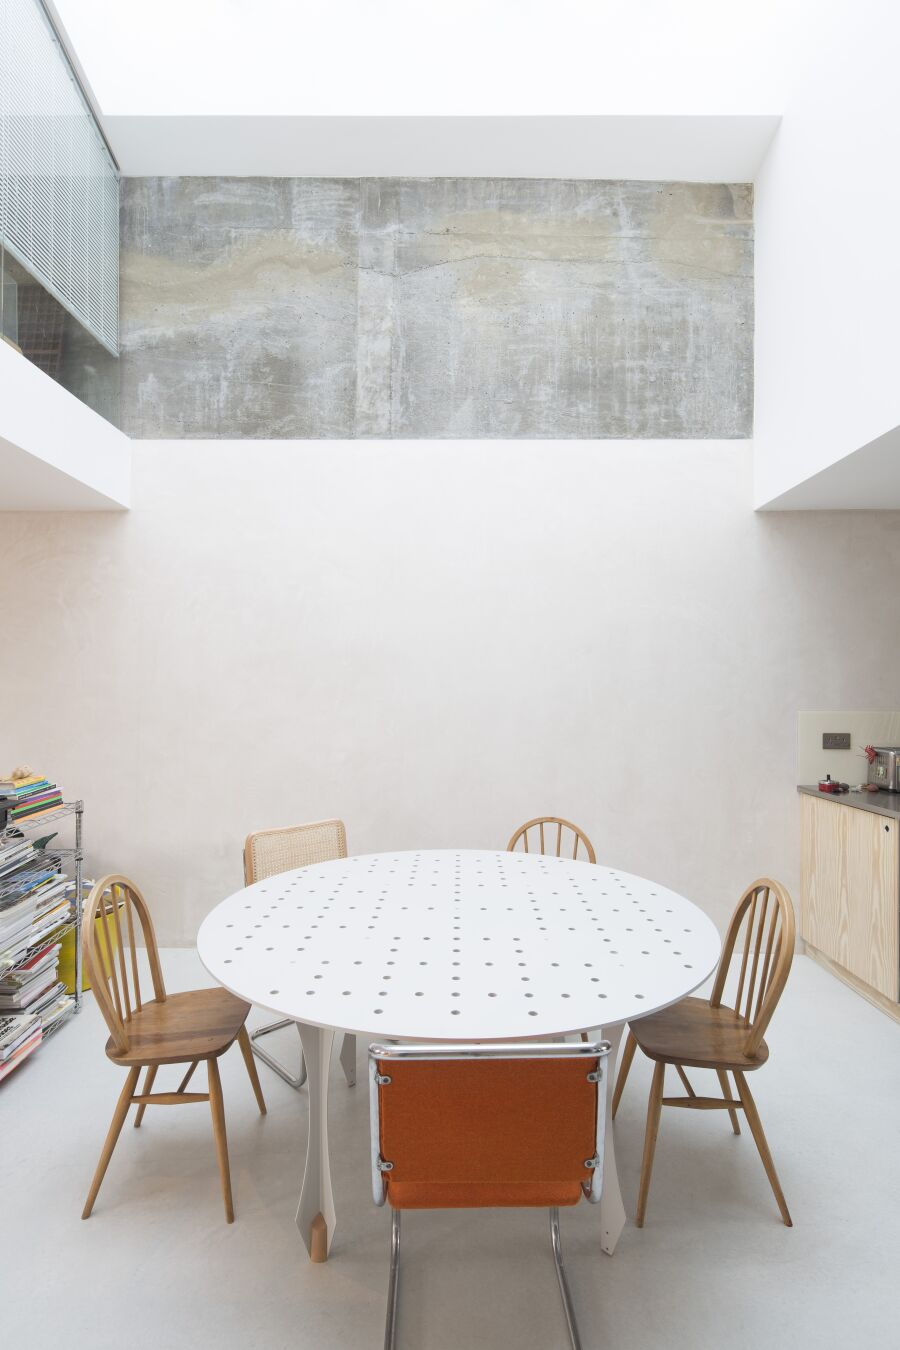 Perforated steel dining table in open plan dining area